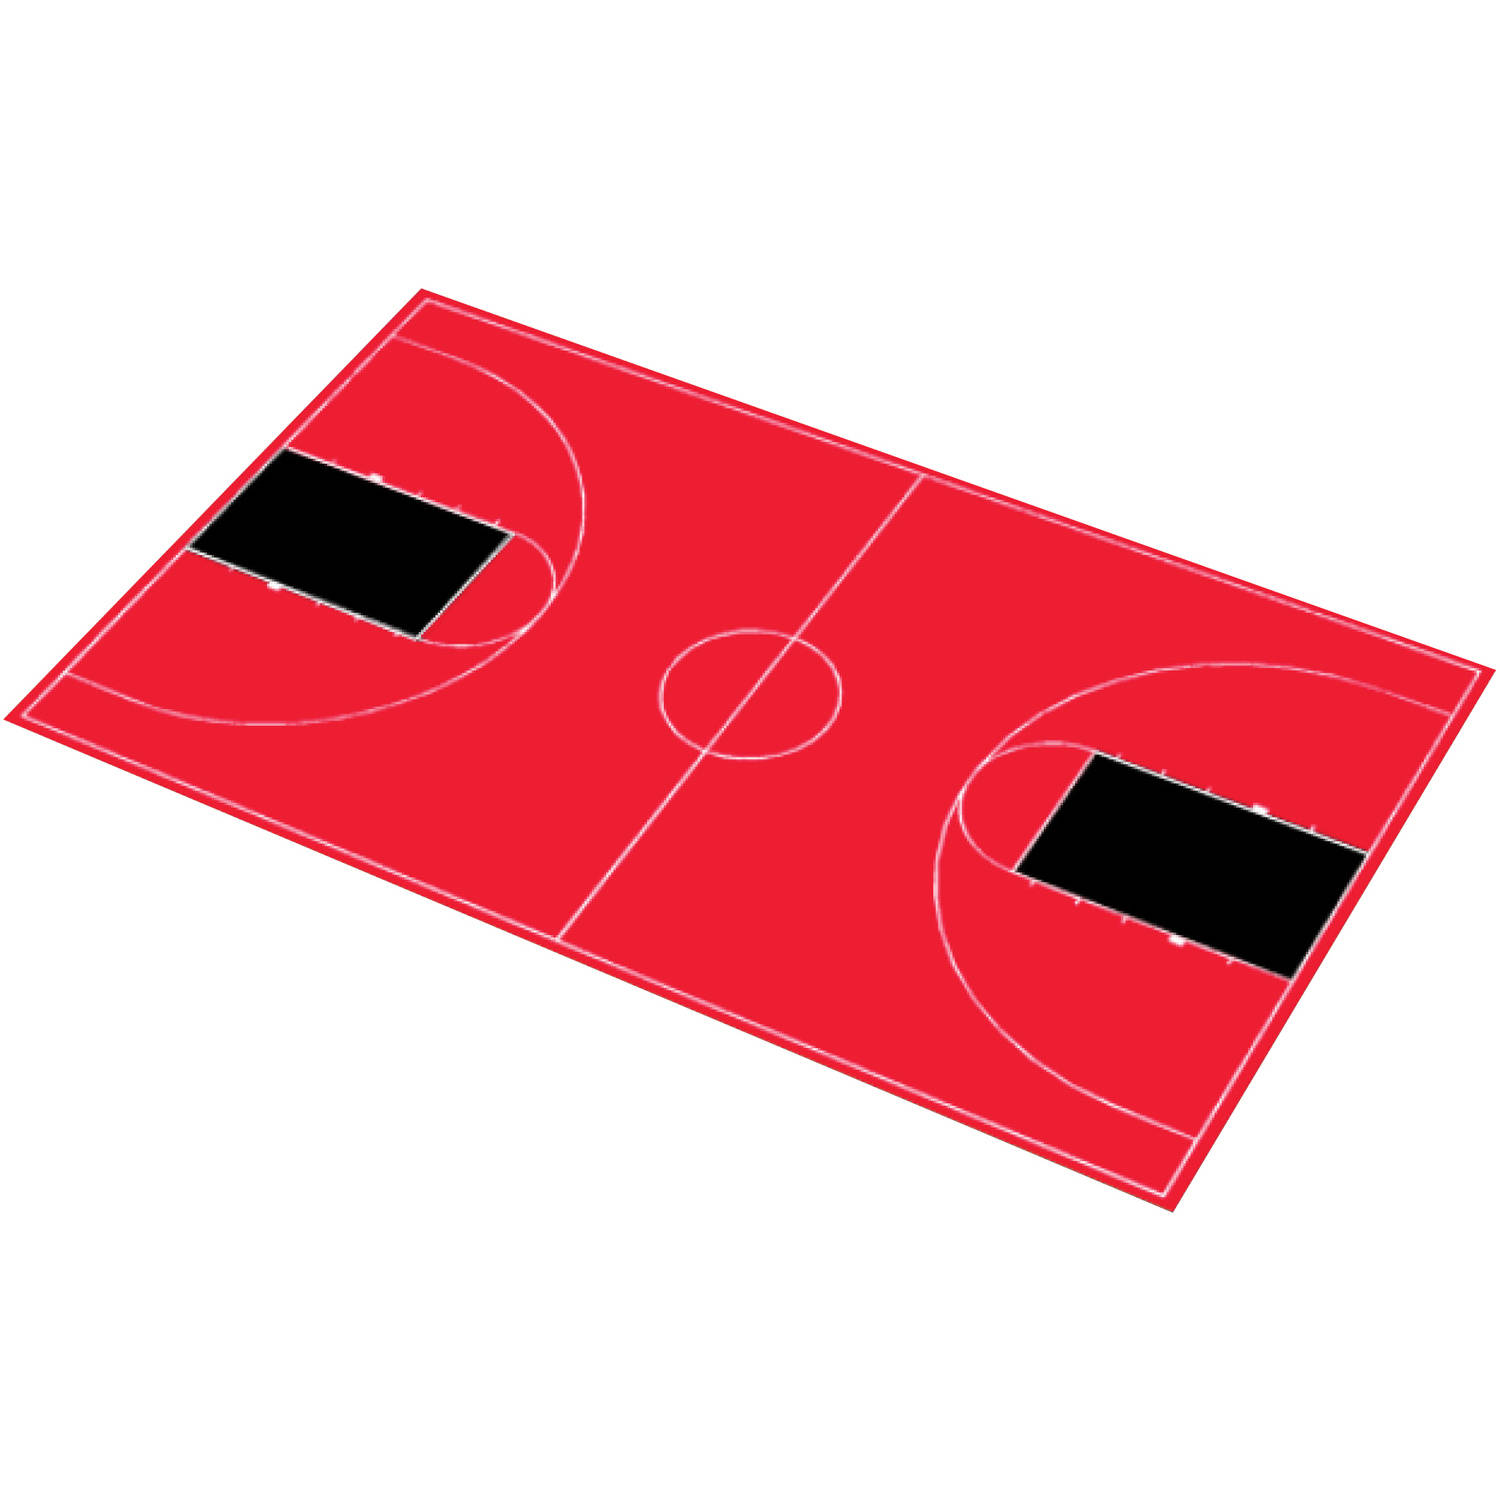 """DuraPlay Full Court Basketball Kit, 51' x 83'11"""", Red and Black"""